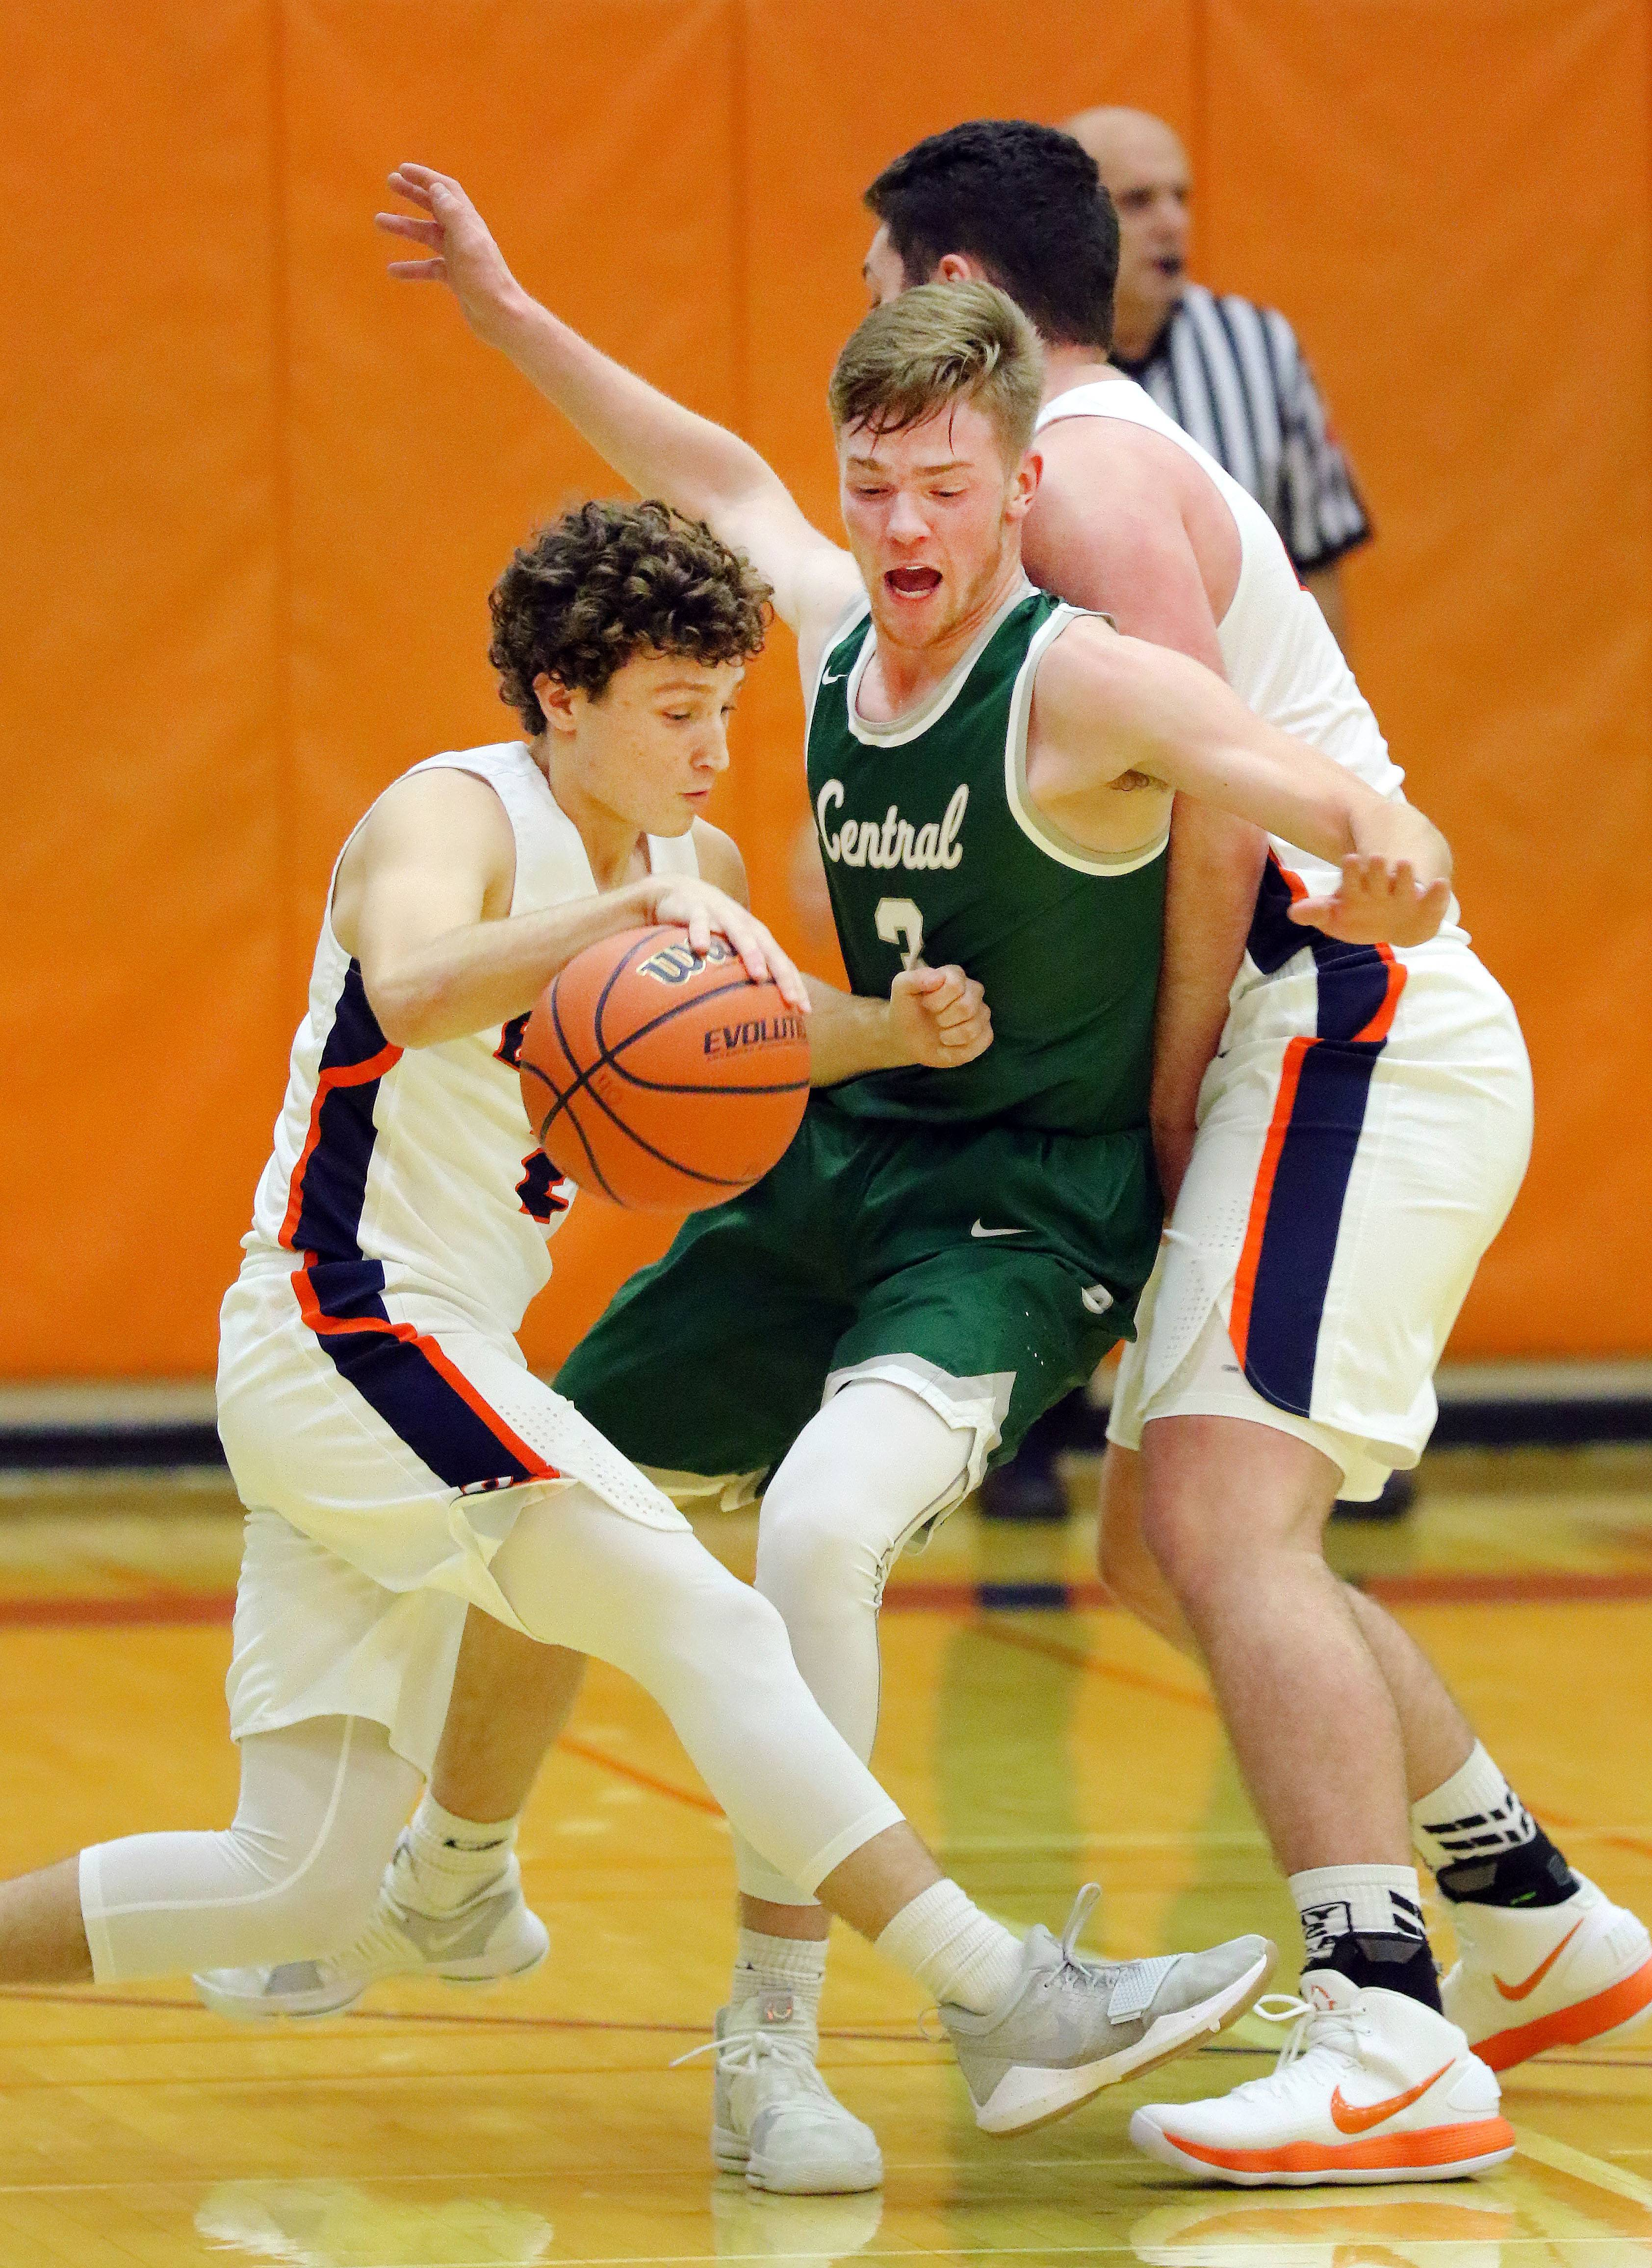 Buffalo Grove's Kyle Adams, left, drives on Grayslake Central's Alec Novak on Monday night at Buffalo Grove.